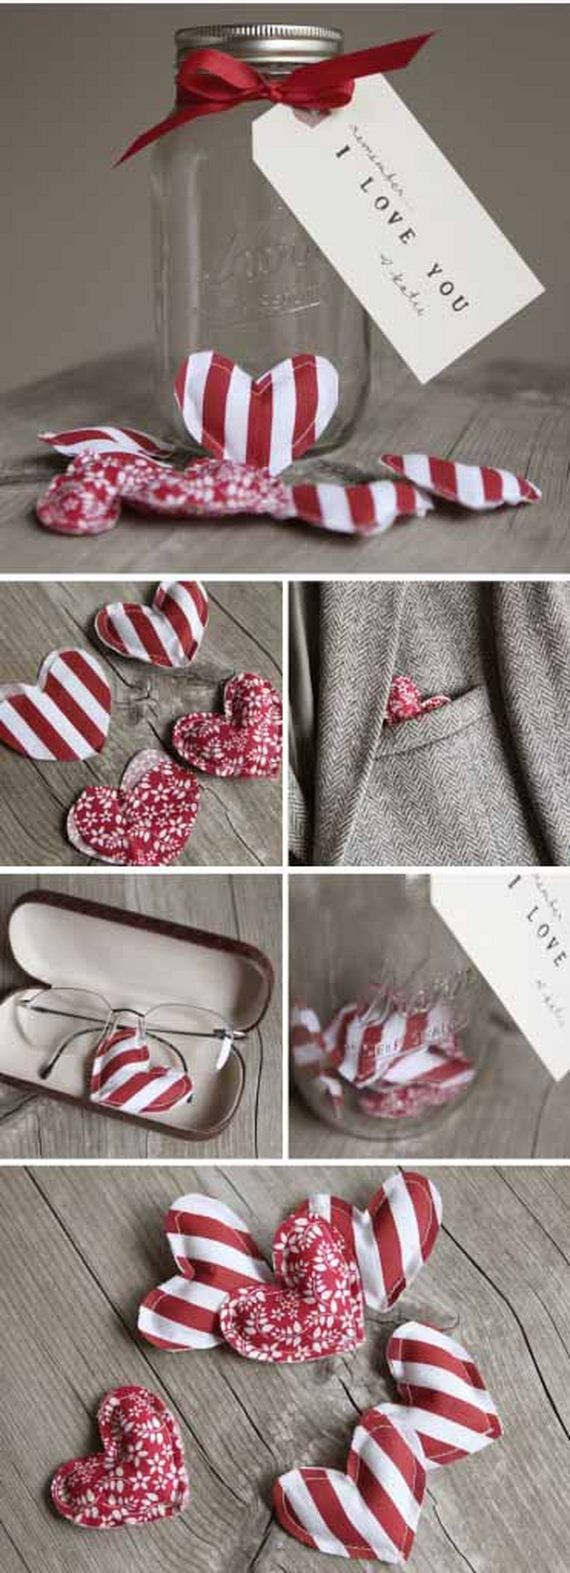 37-Romantic-DIY-Projects